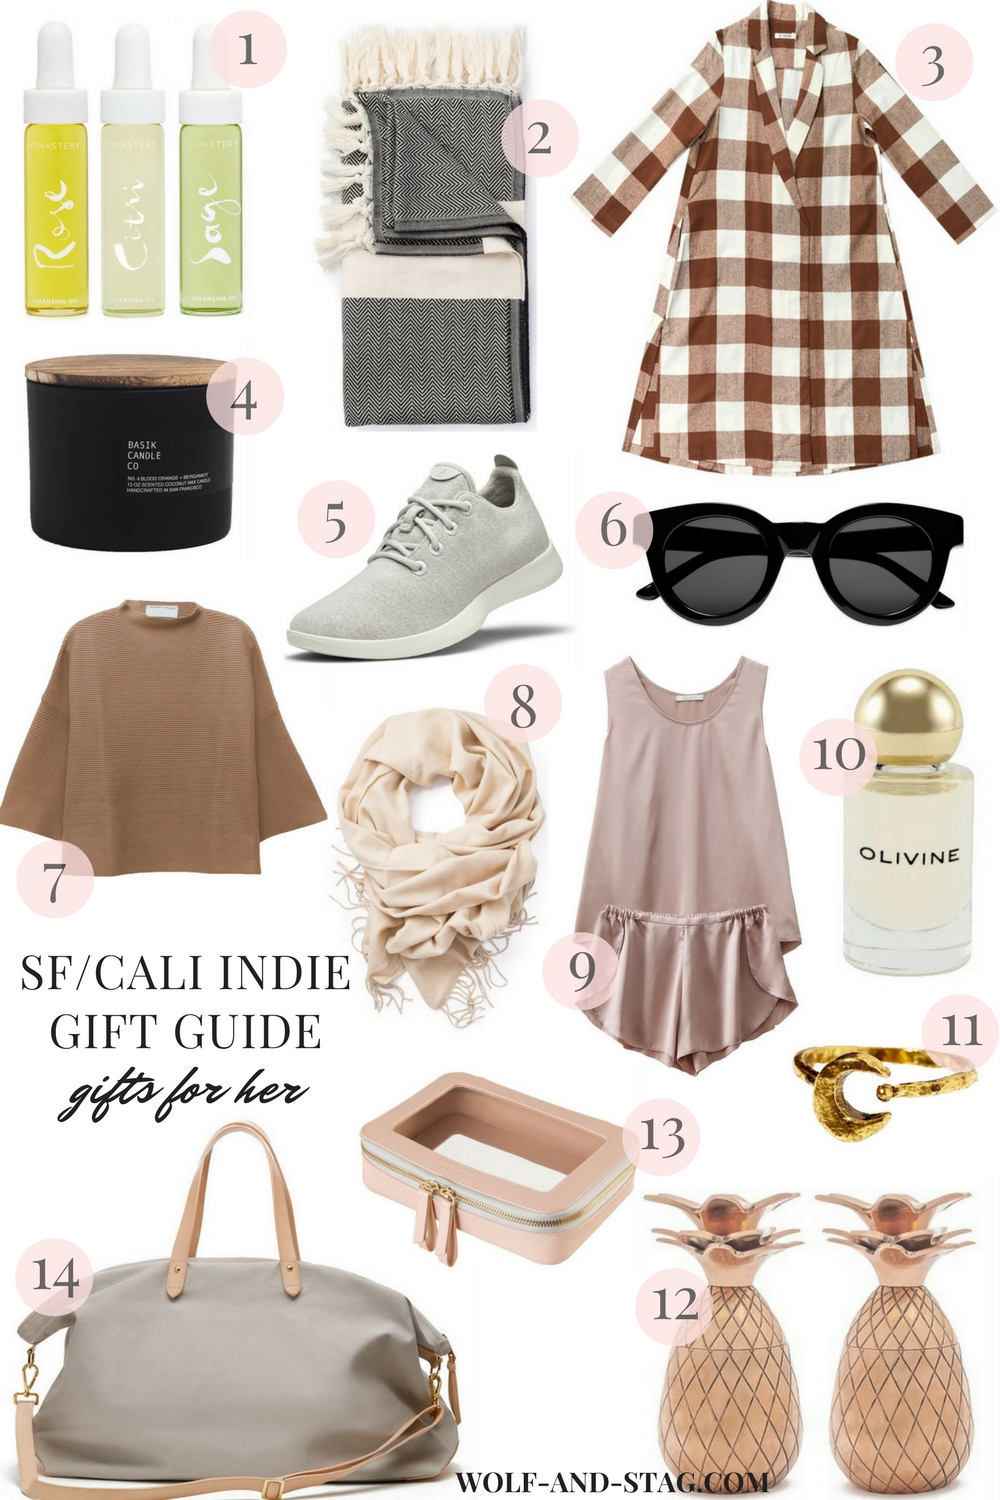 The Independent Holiday Gift Guide (San Francisco) | Gifts for Her | Wolf & Stag